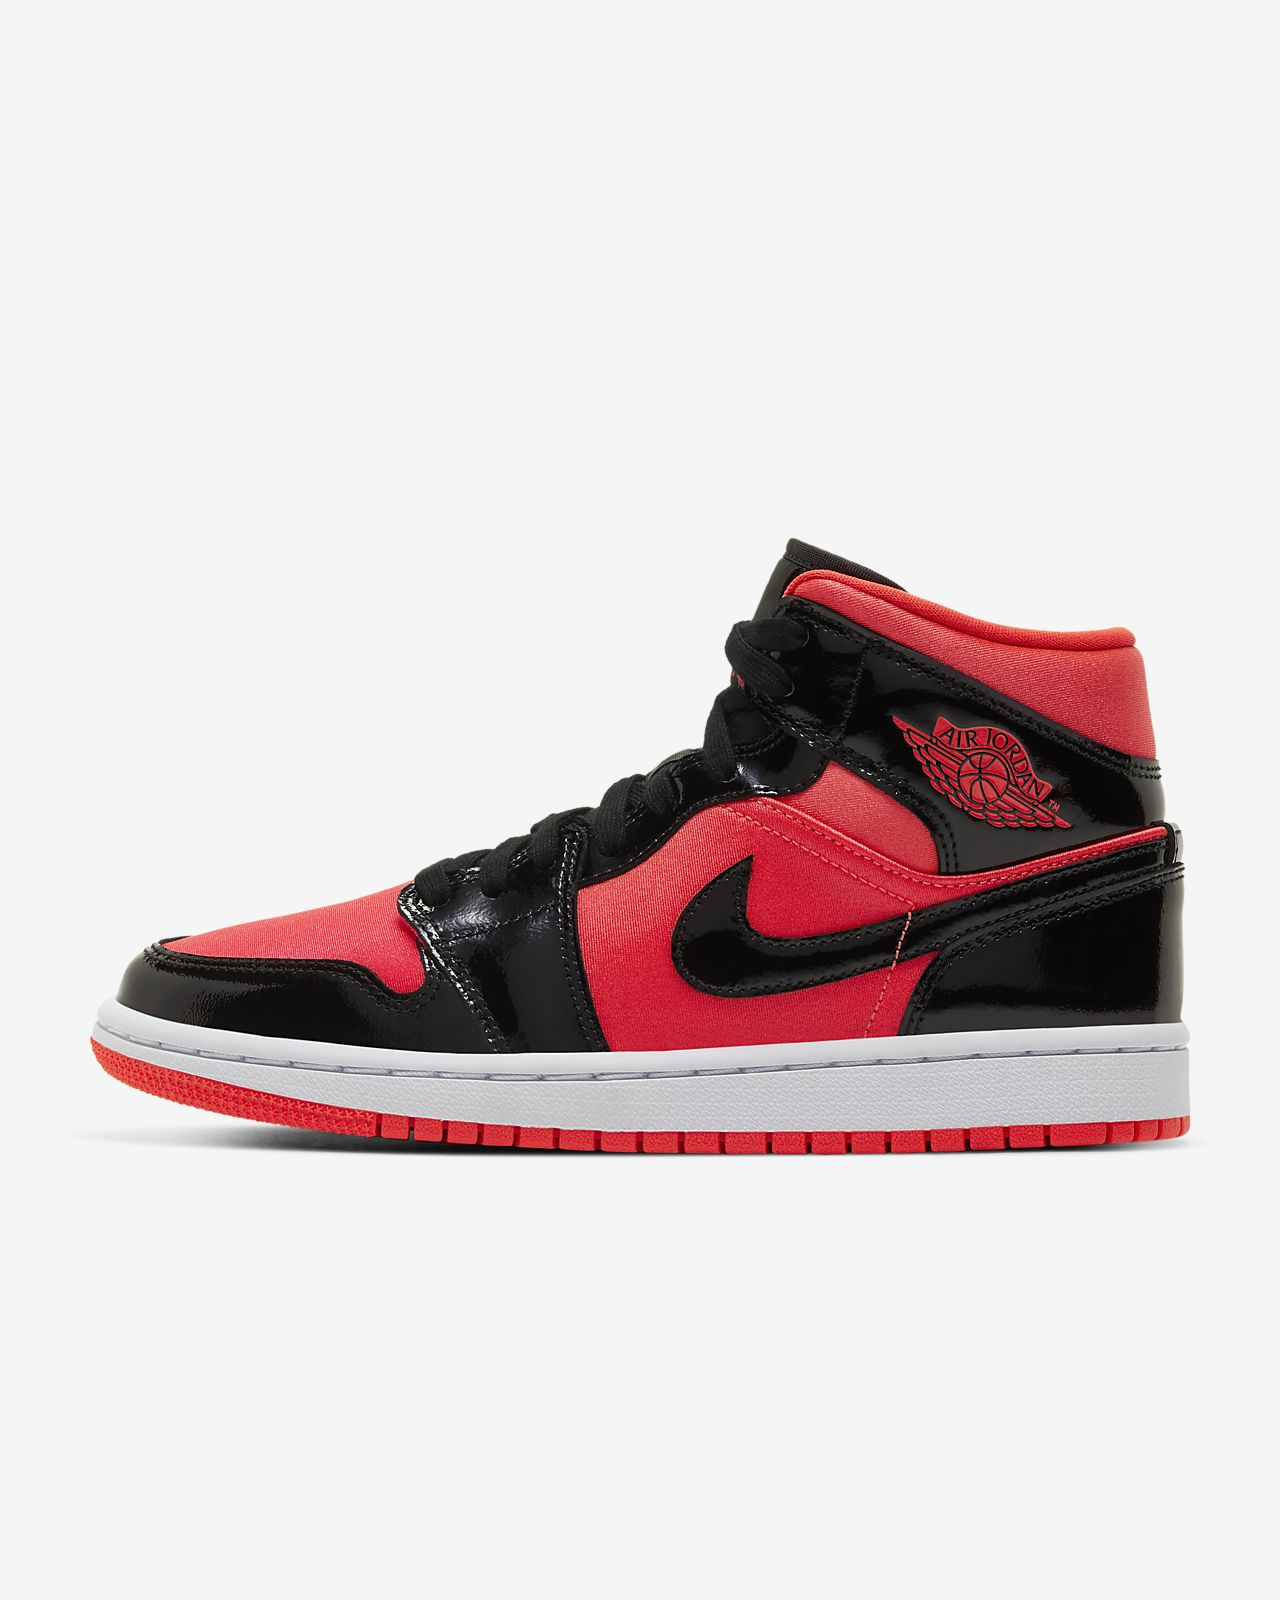 top design reasonably priced retail prices Chaussure Air Jordan 1 Mid pour Femme